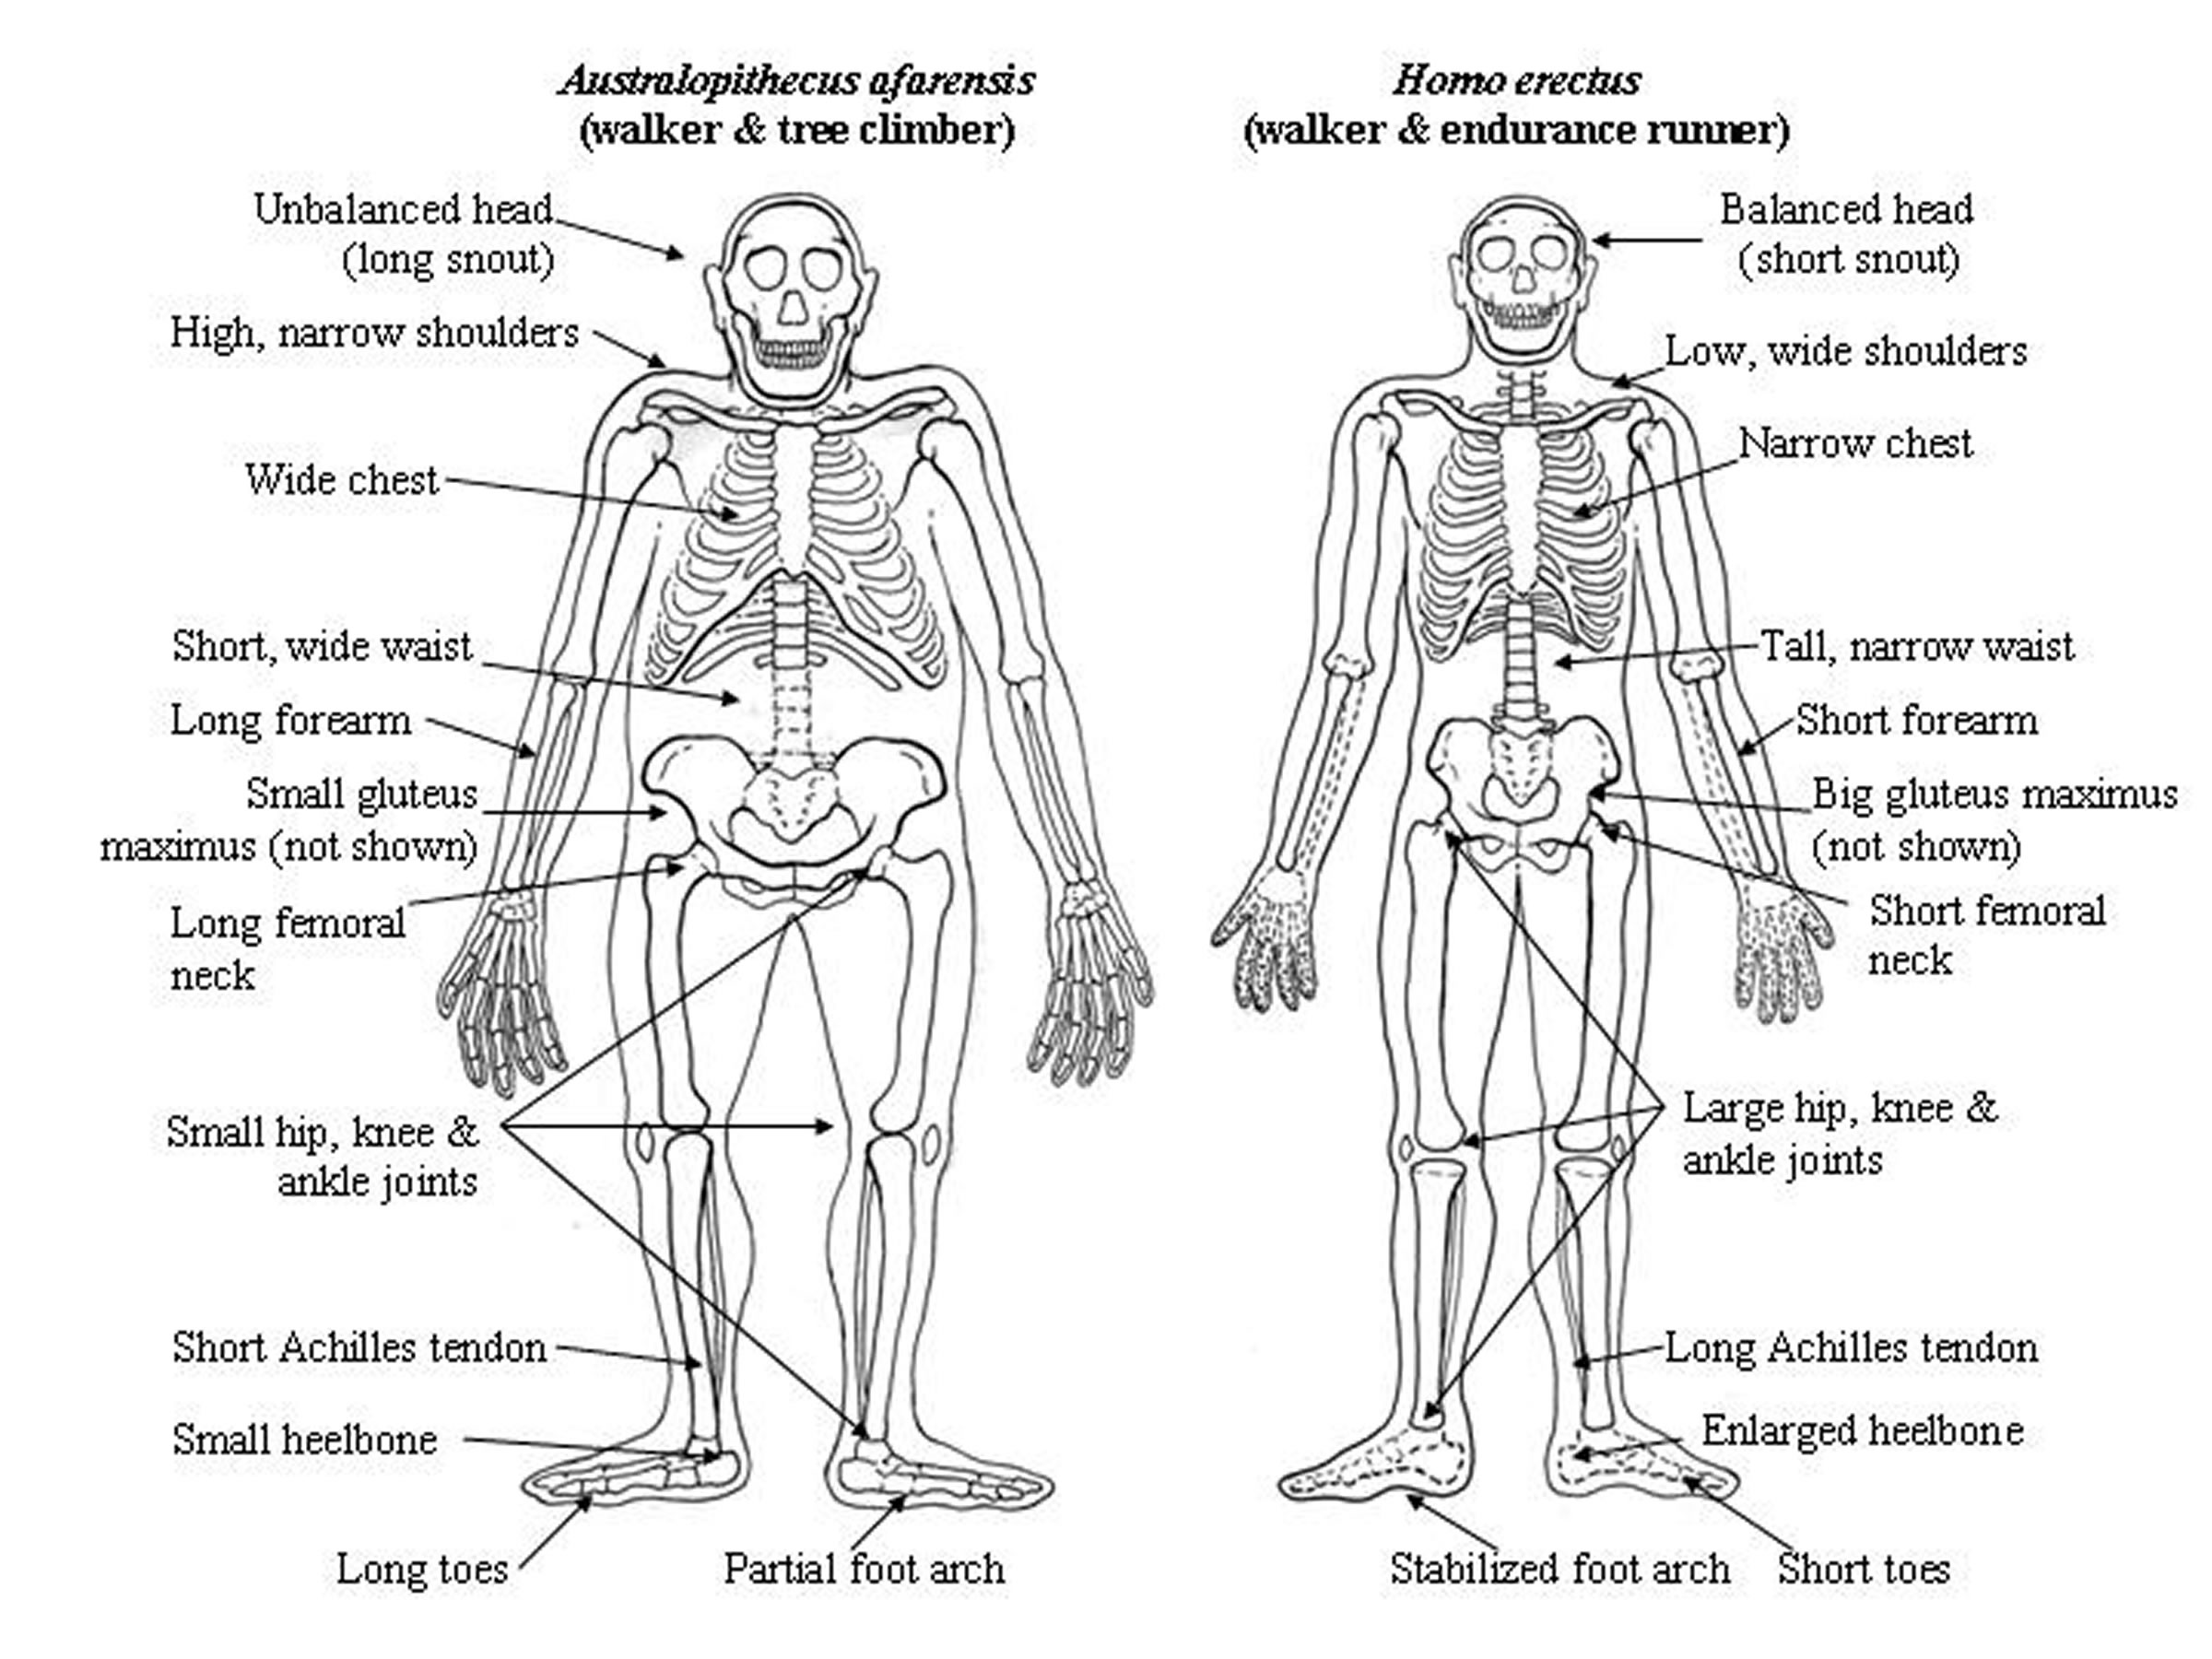 Drawings of our ape-like ancestor, Australopithecus afarensis, and an early human species, Homo erectus, shows some of the differences that gave humans the ability to run long distances.